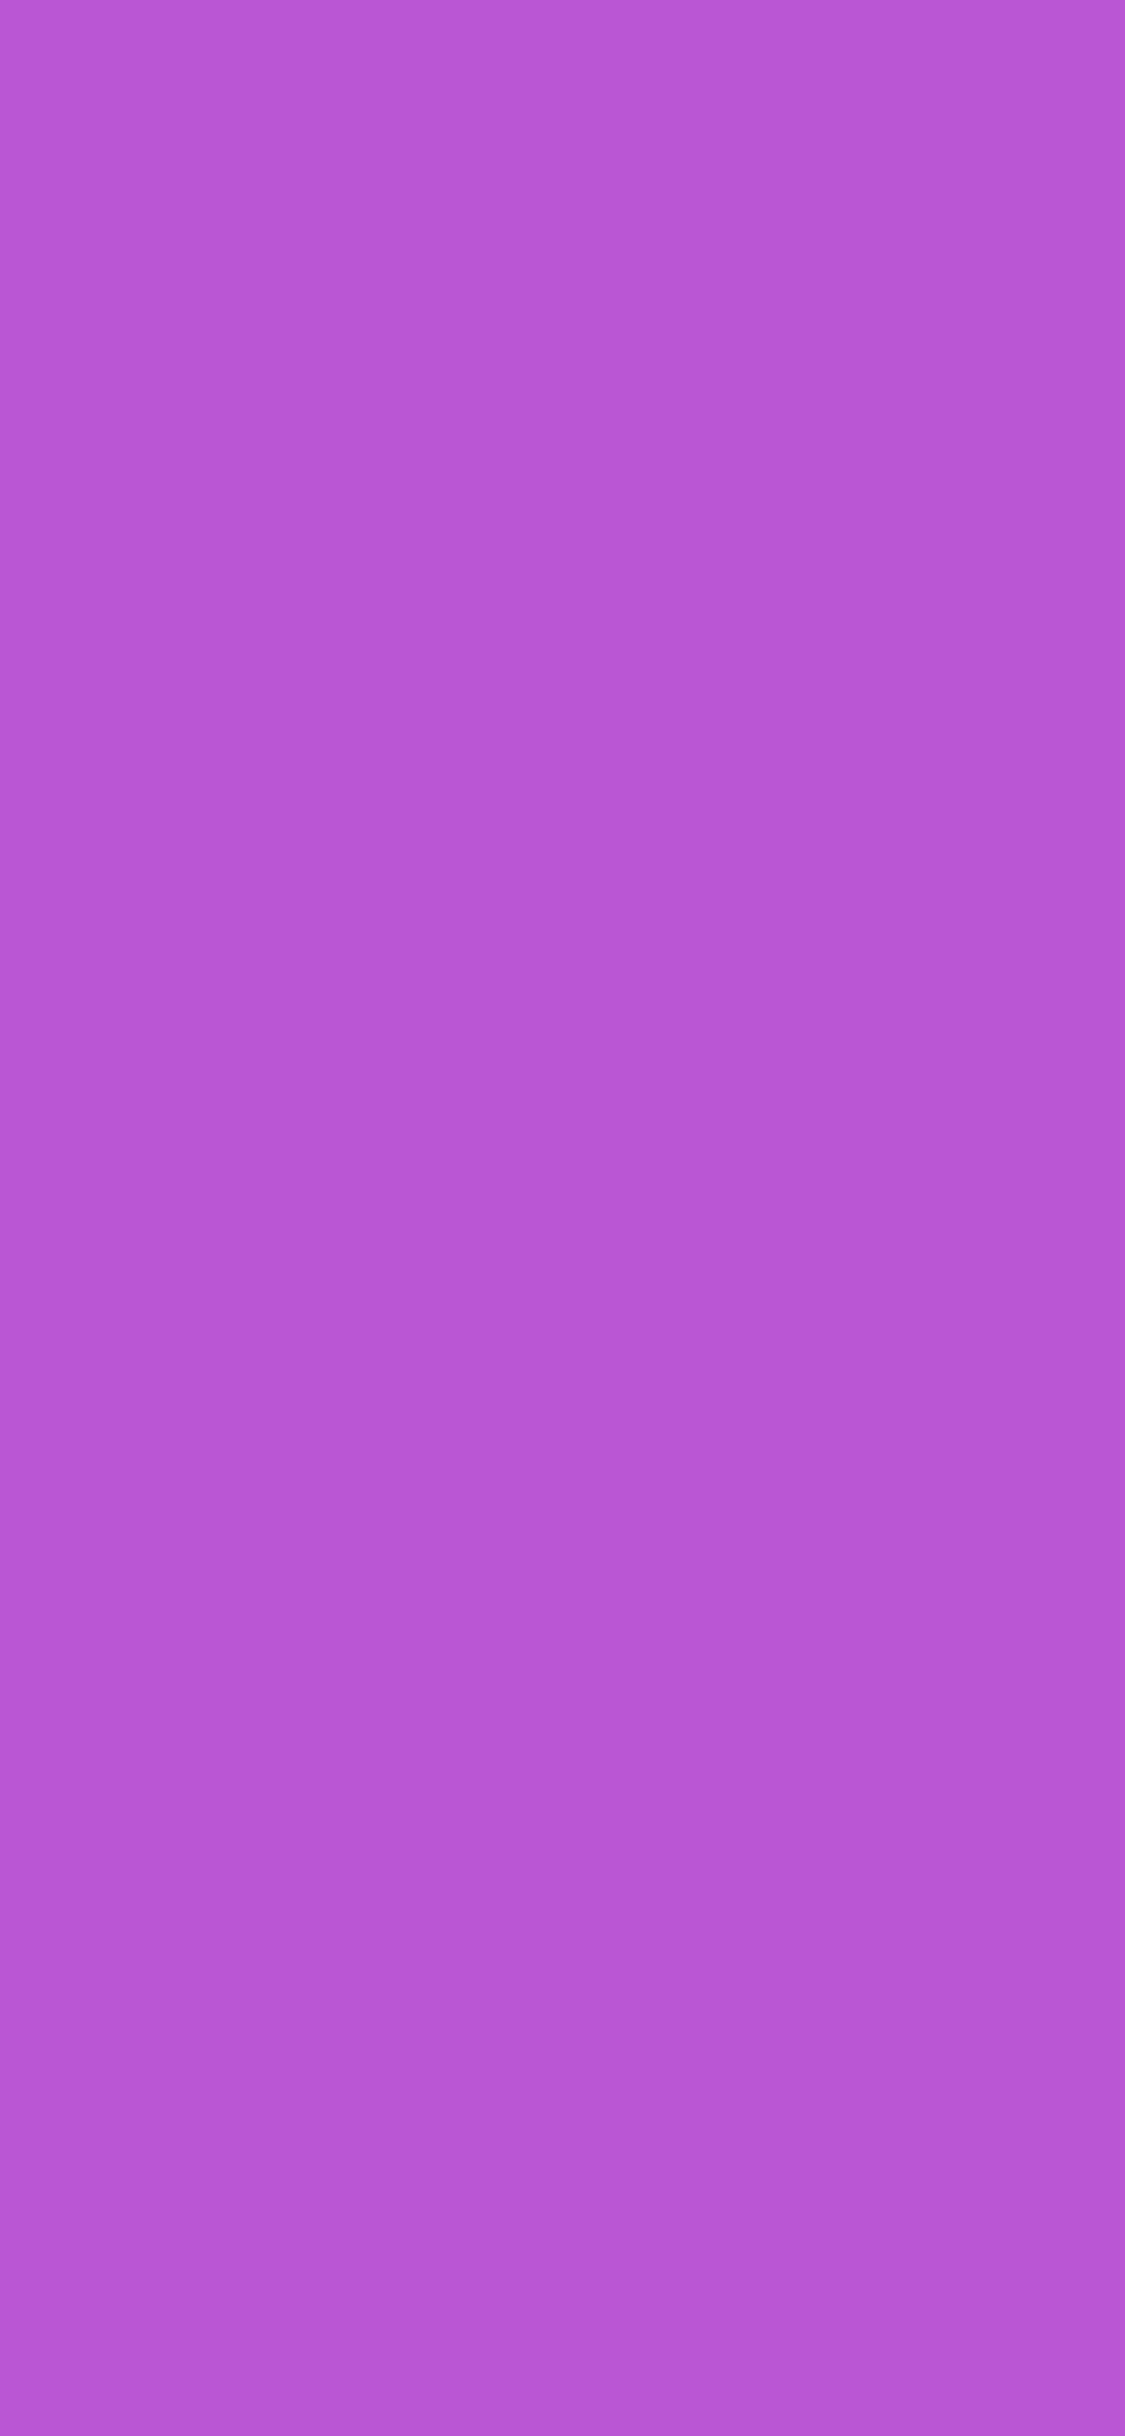 1125x2436 Medium Orchid Solid Color Background